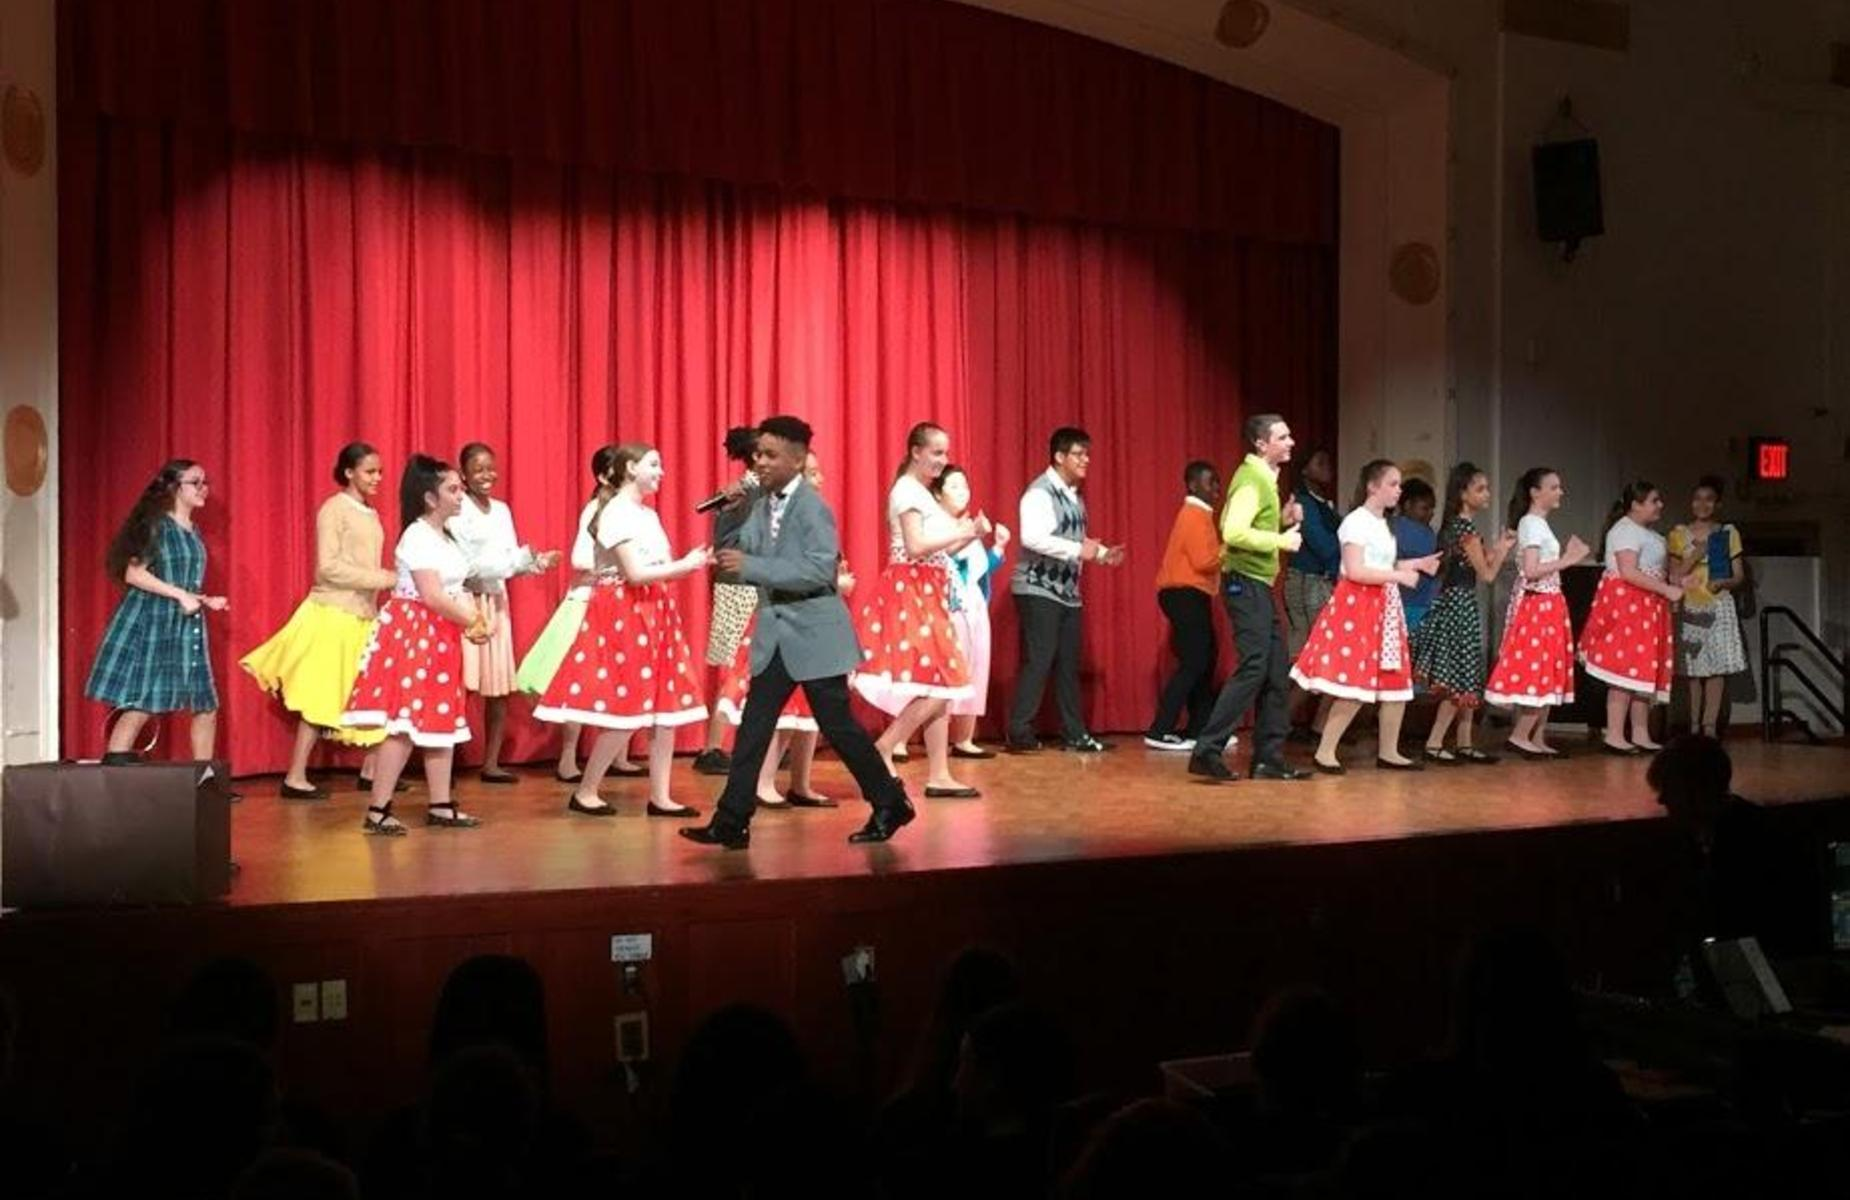 Musical Theater performing Hairspray